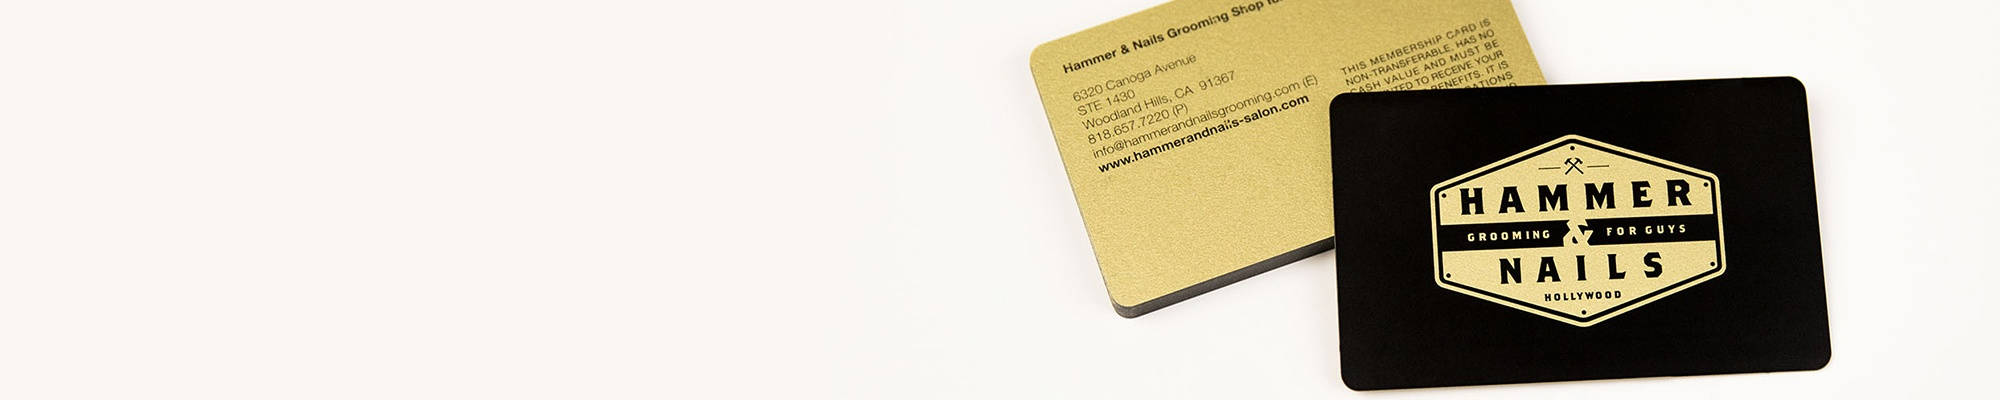 example of a gold metal business card